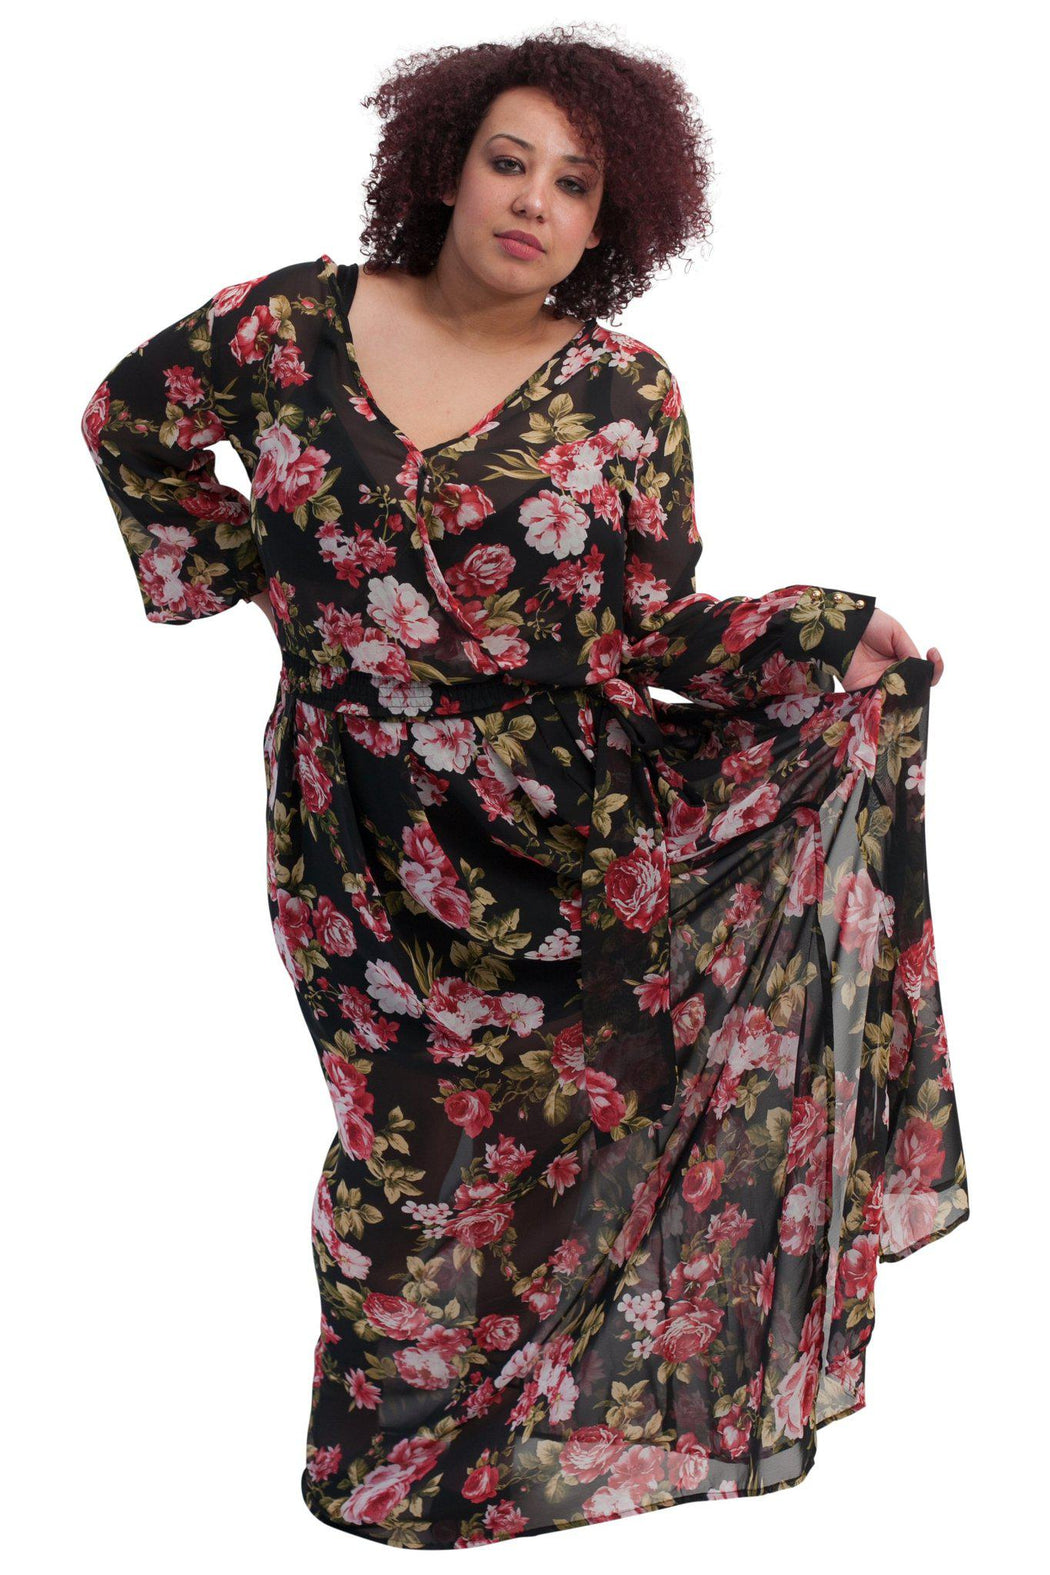 PRIMROSE black floral chiffon matched set front view